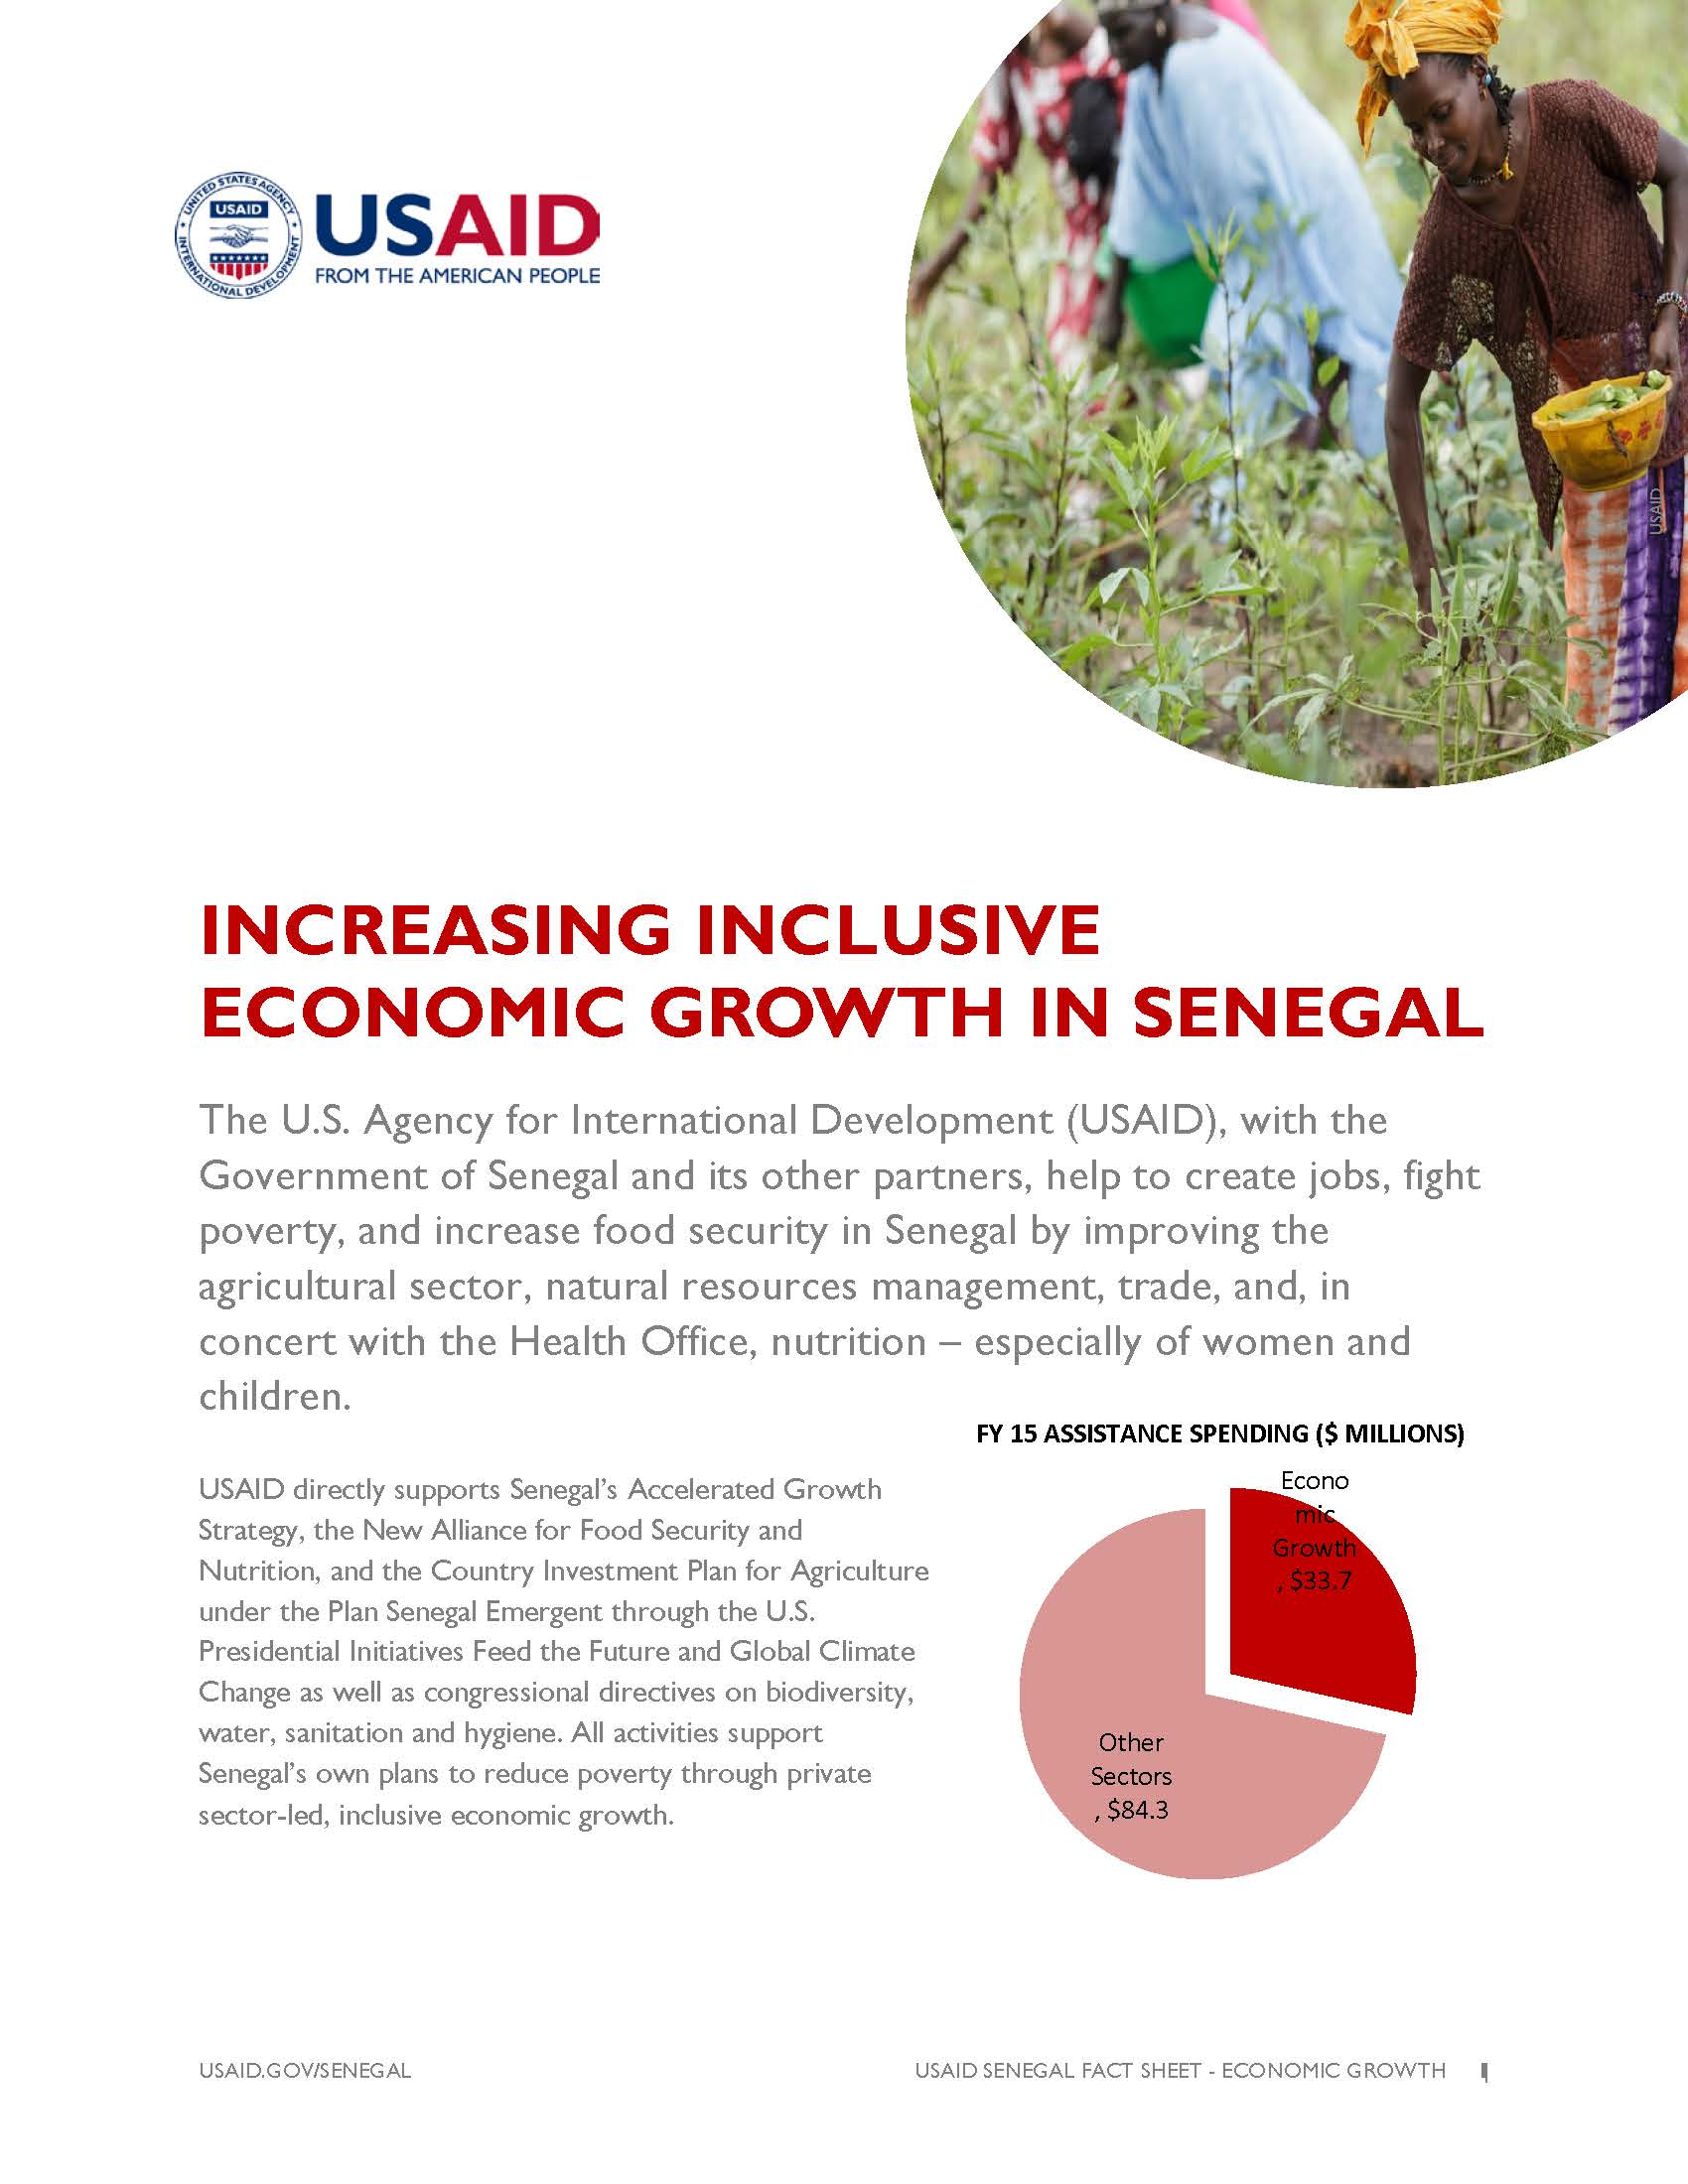 Increasing Inclusive Economic Growth in Senegal